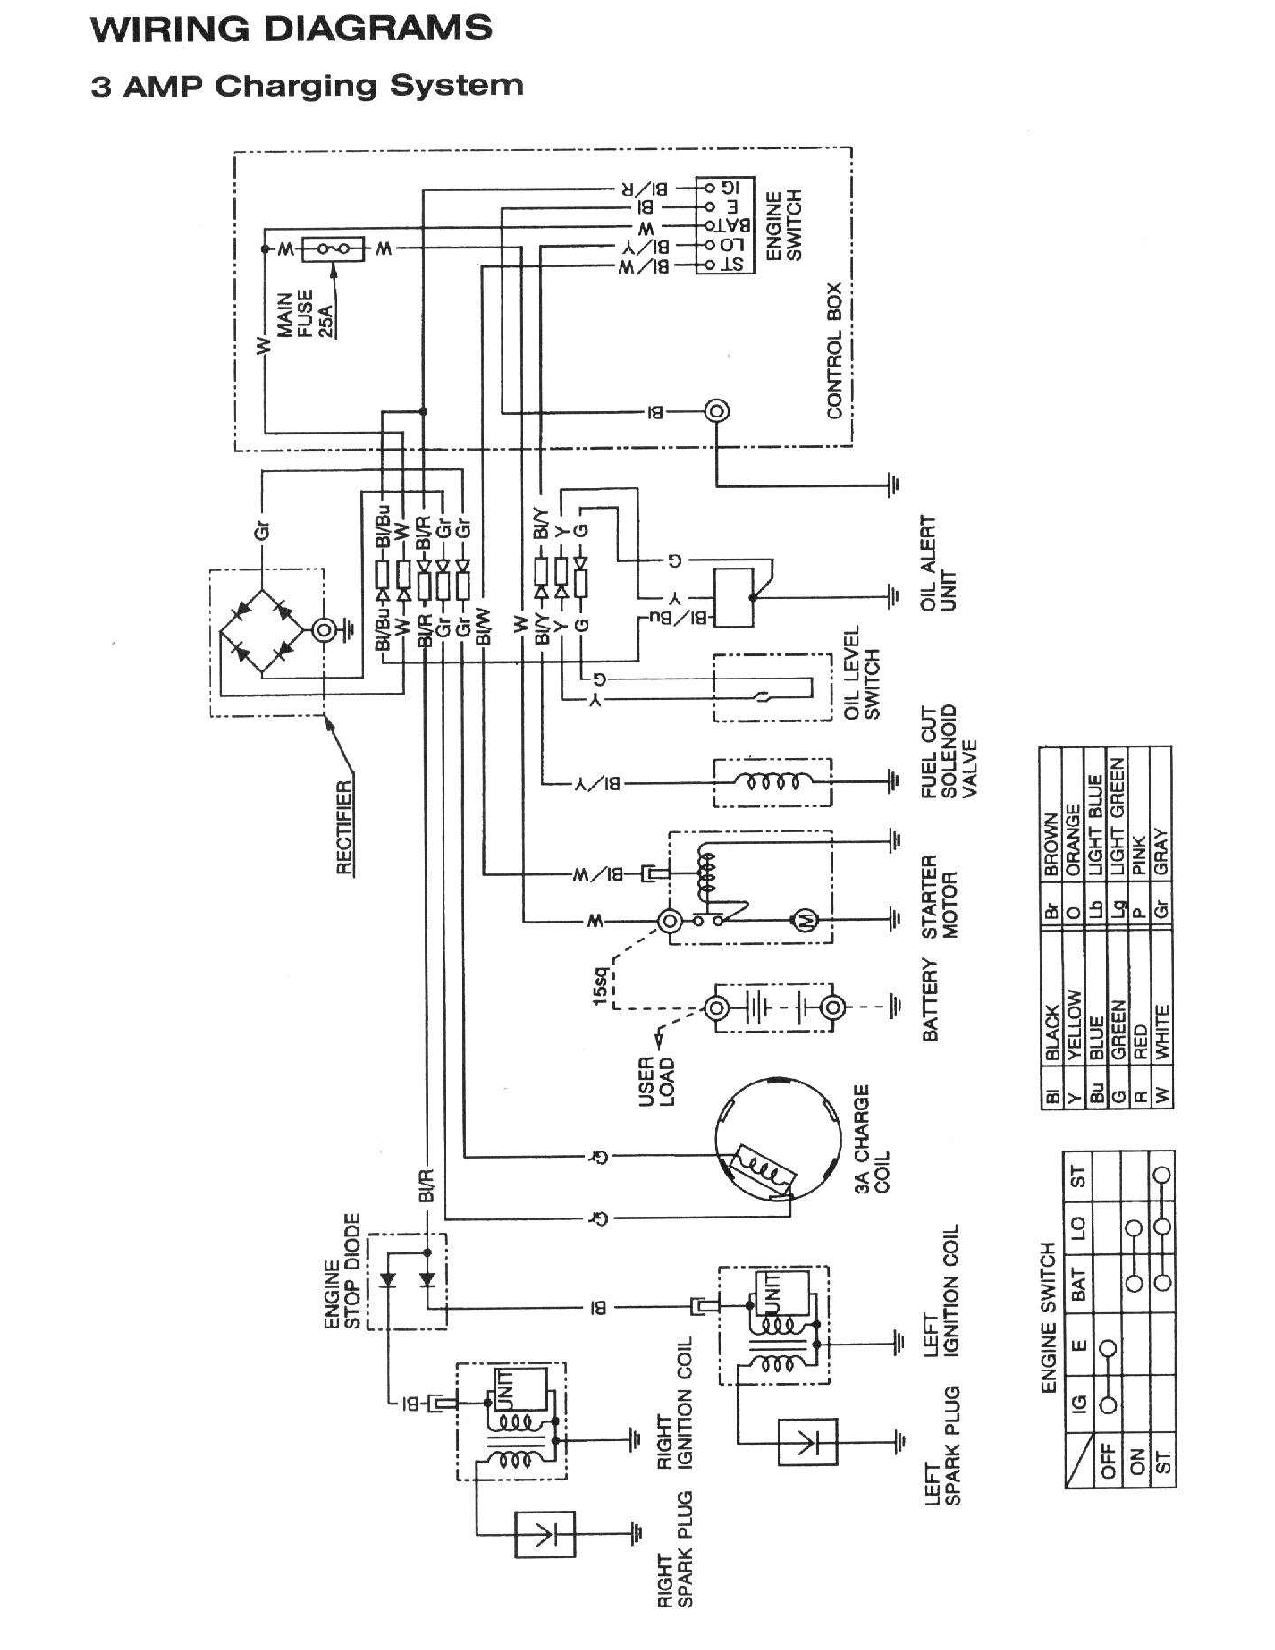 3.5 Hp Briggs And Stratton Ignition Coil Wiring Diagram